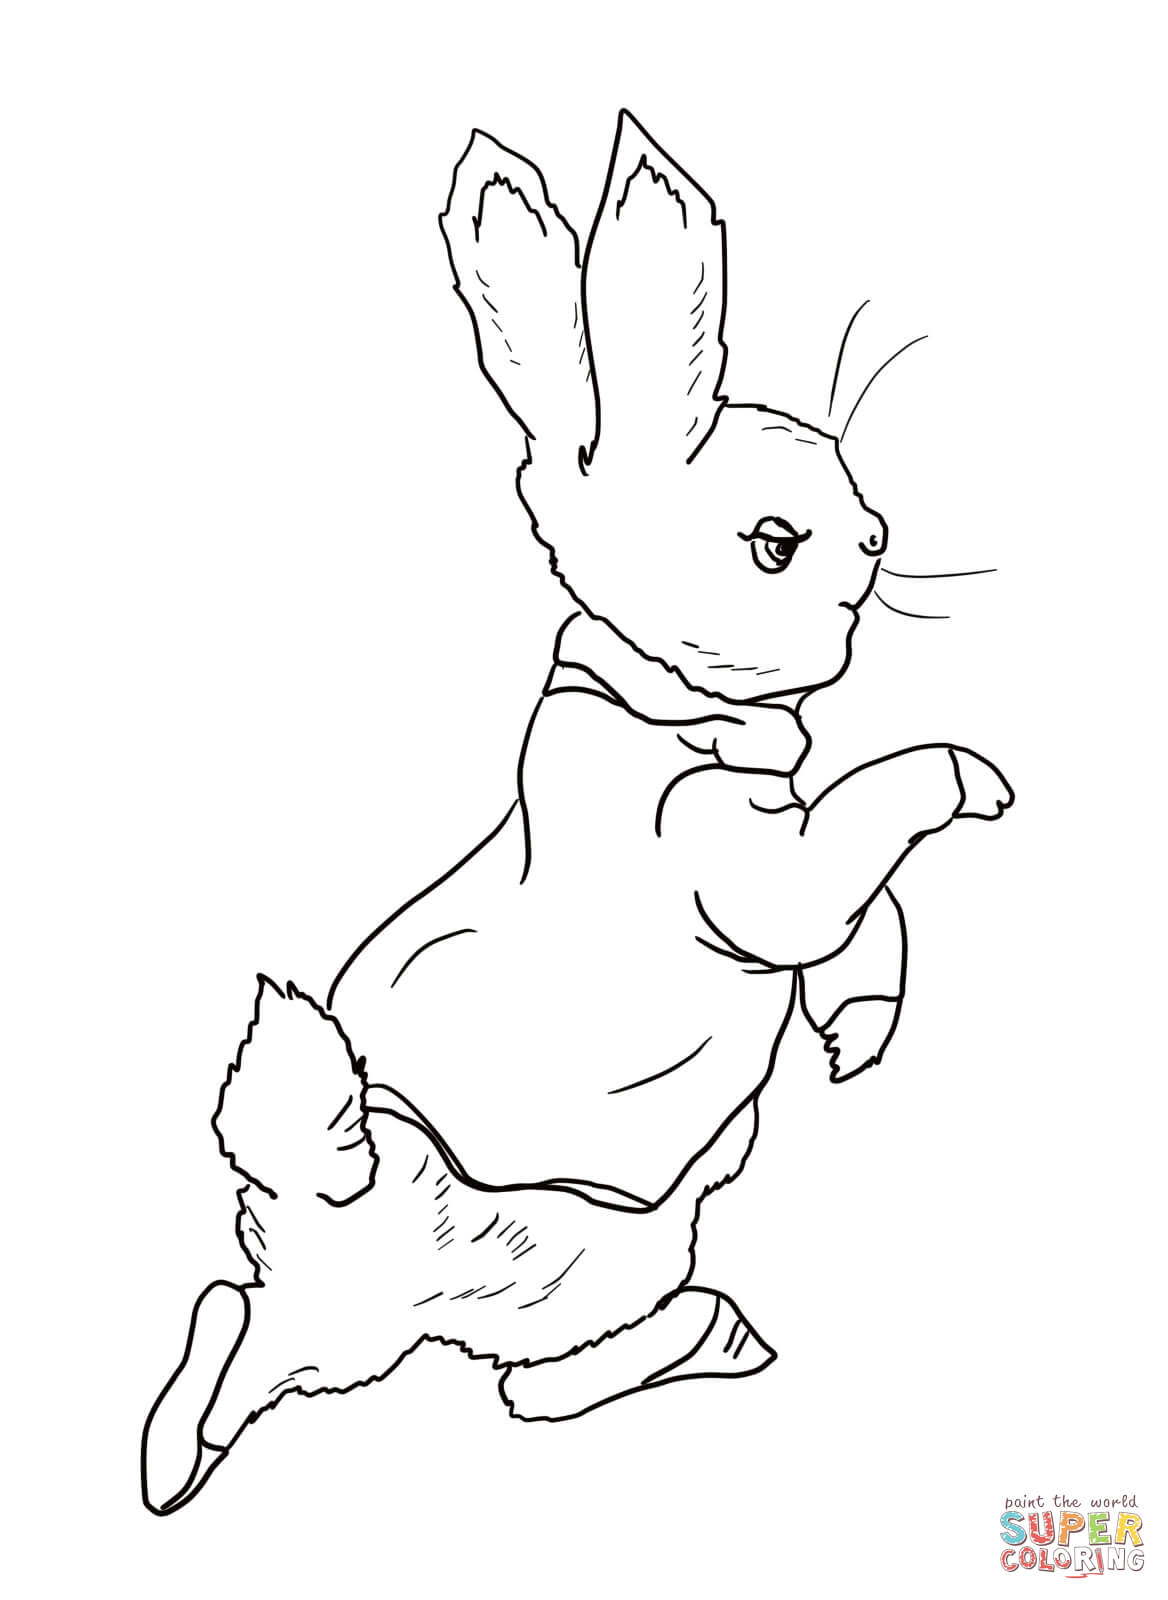 1168x1600 Security Realistic Bunny Coloring Pages Rabbit